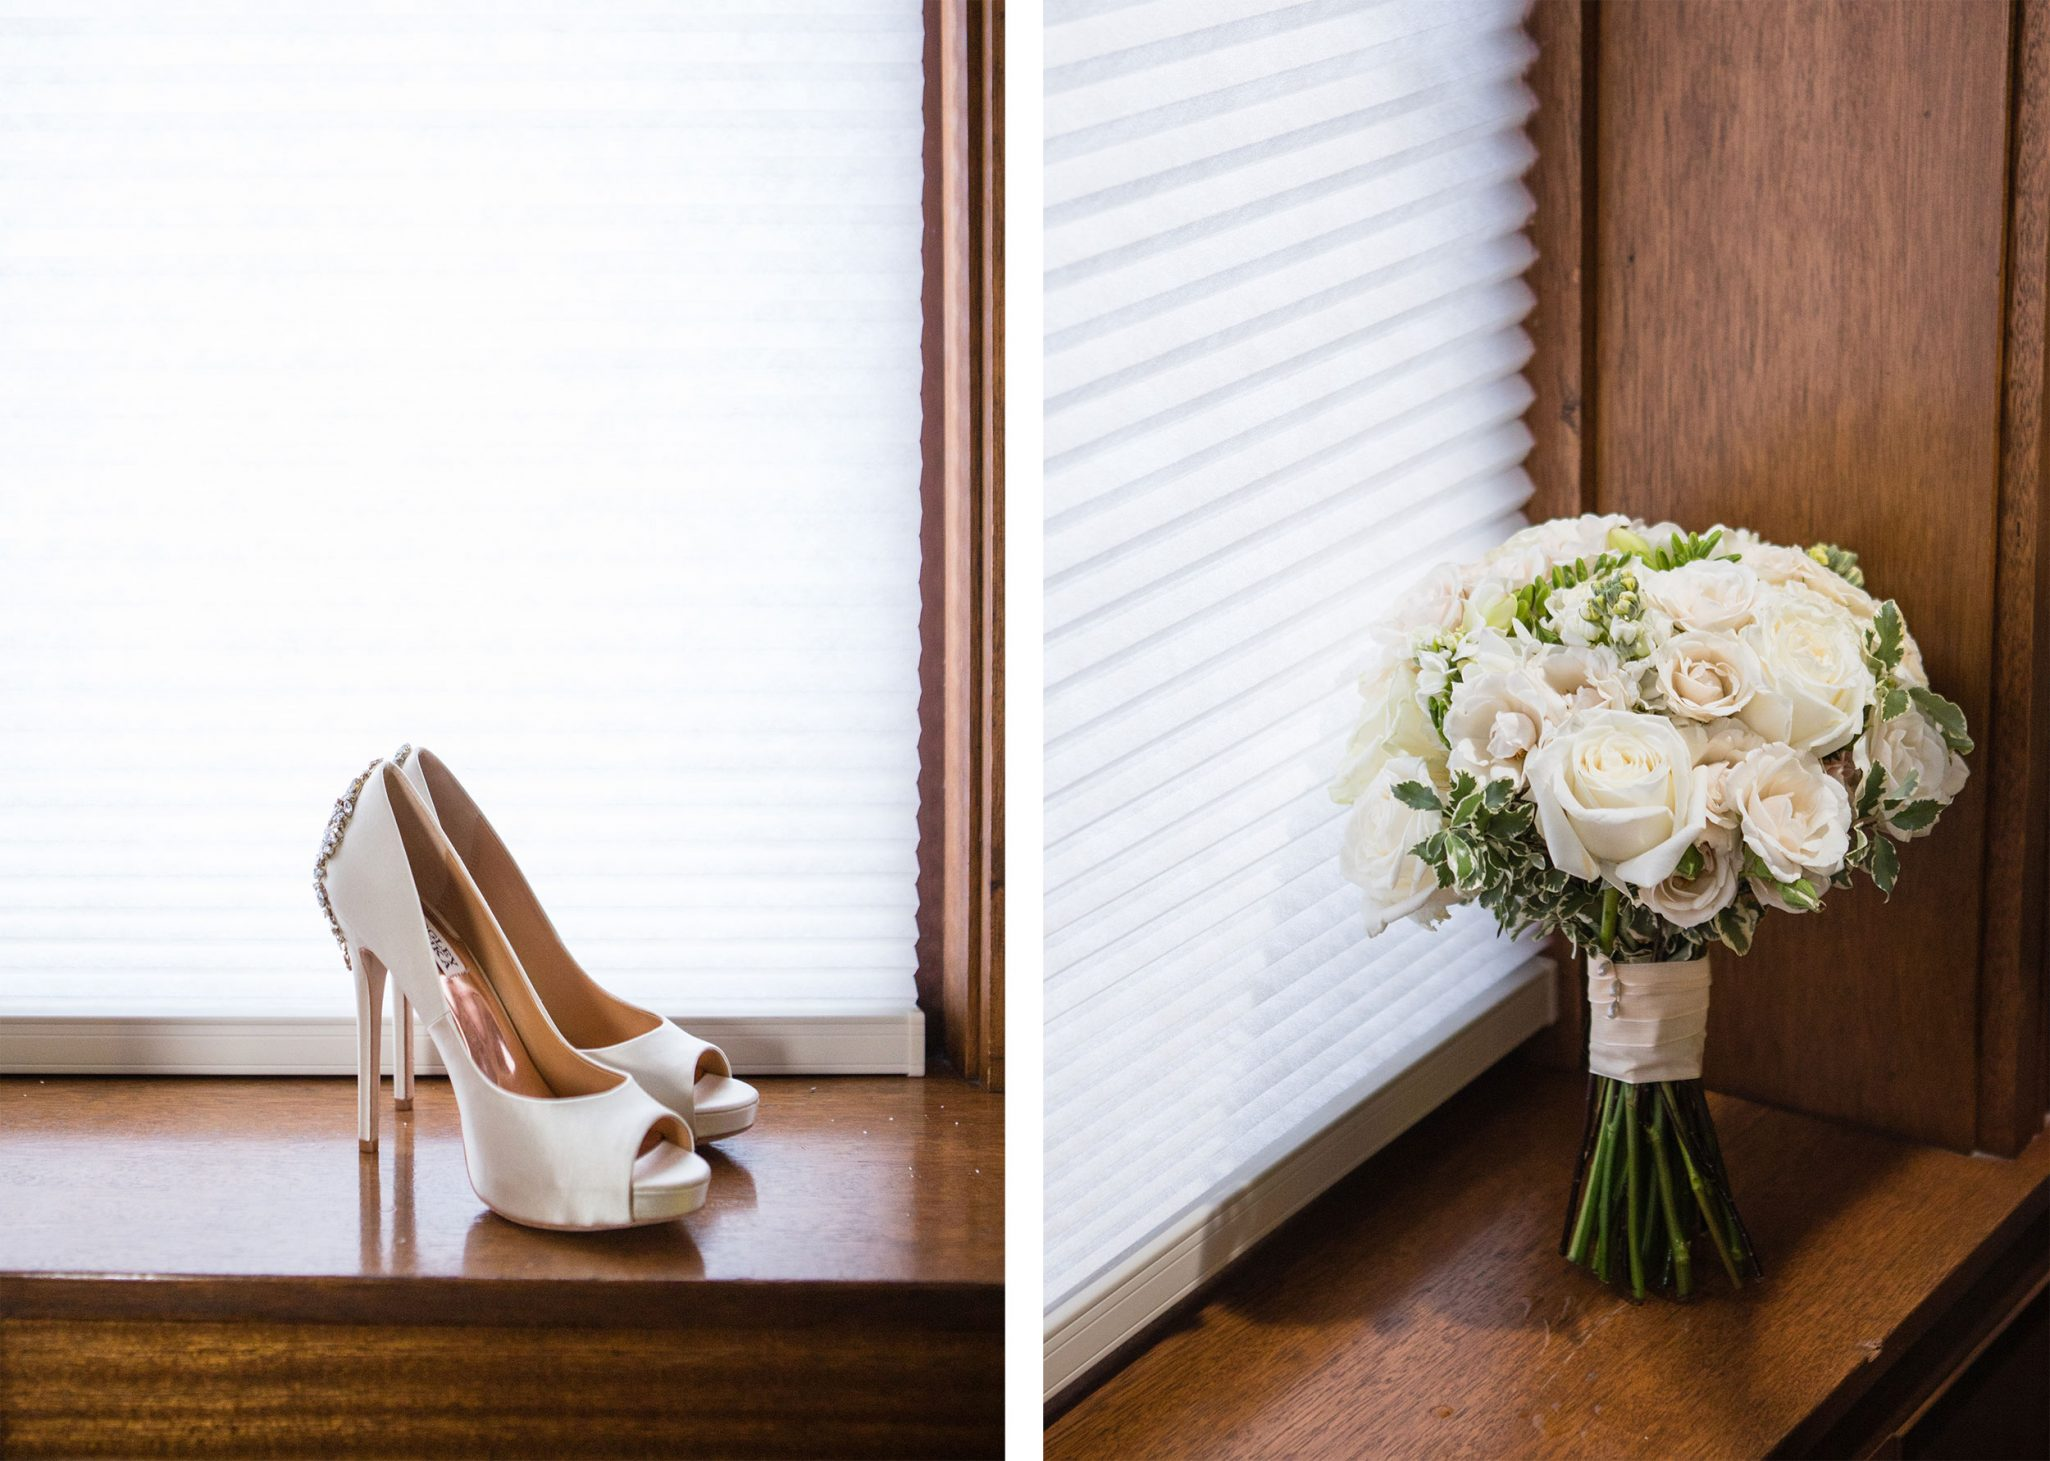 Wedding day details - shoes + bouquet